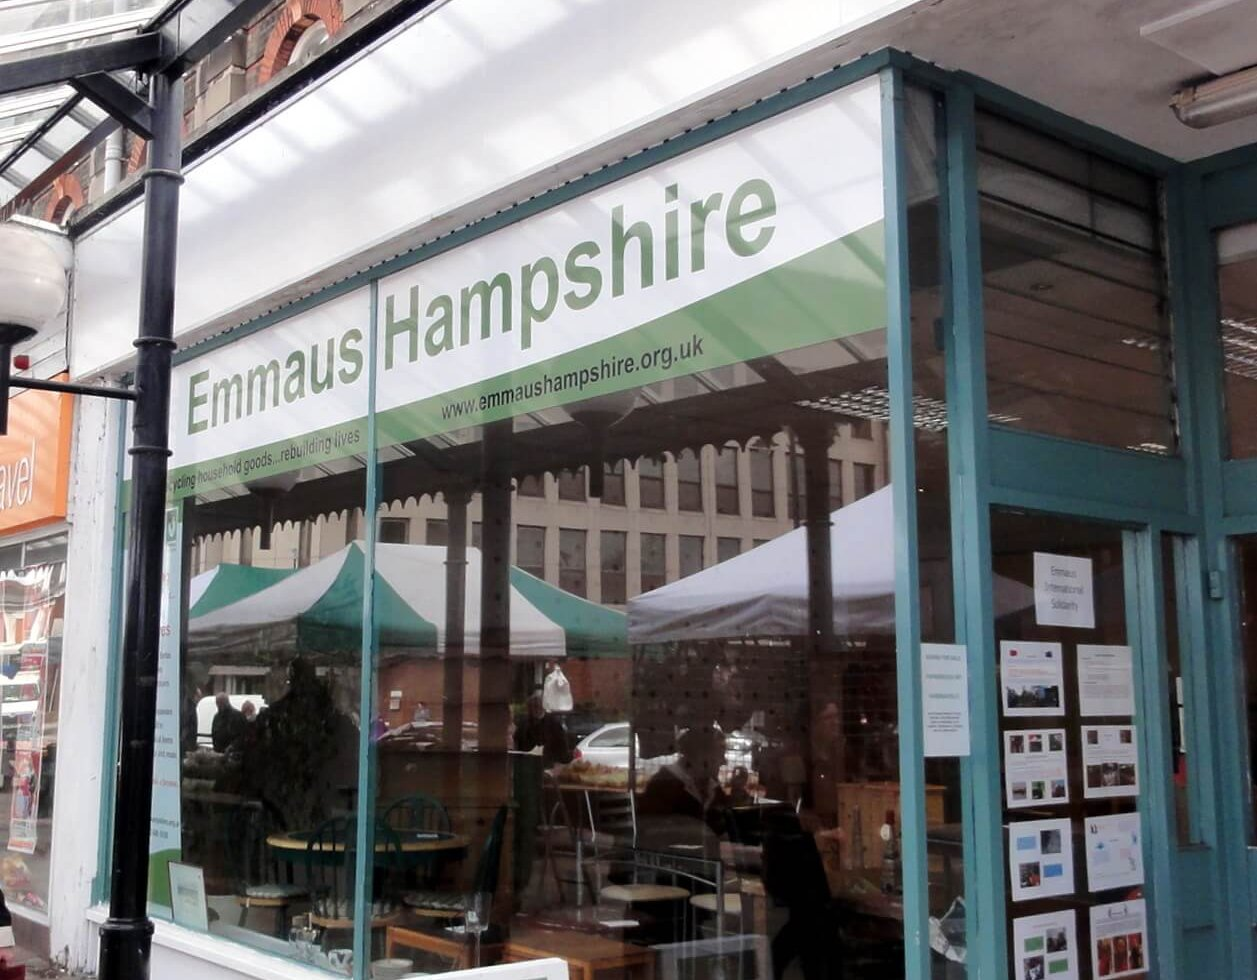 Donate to Emmaus Hampshire